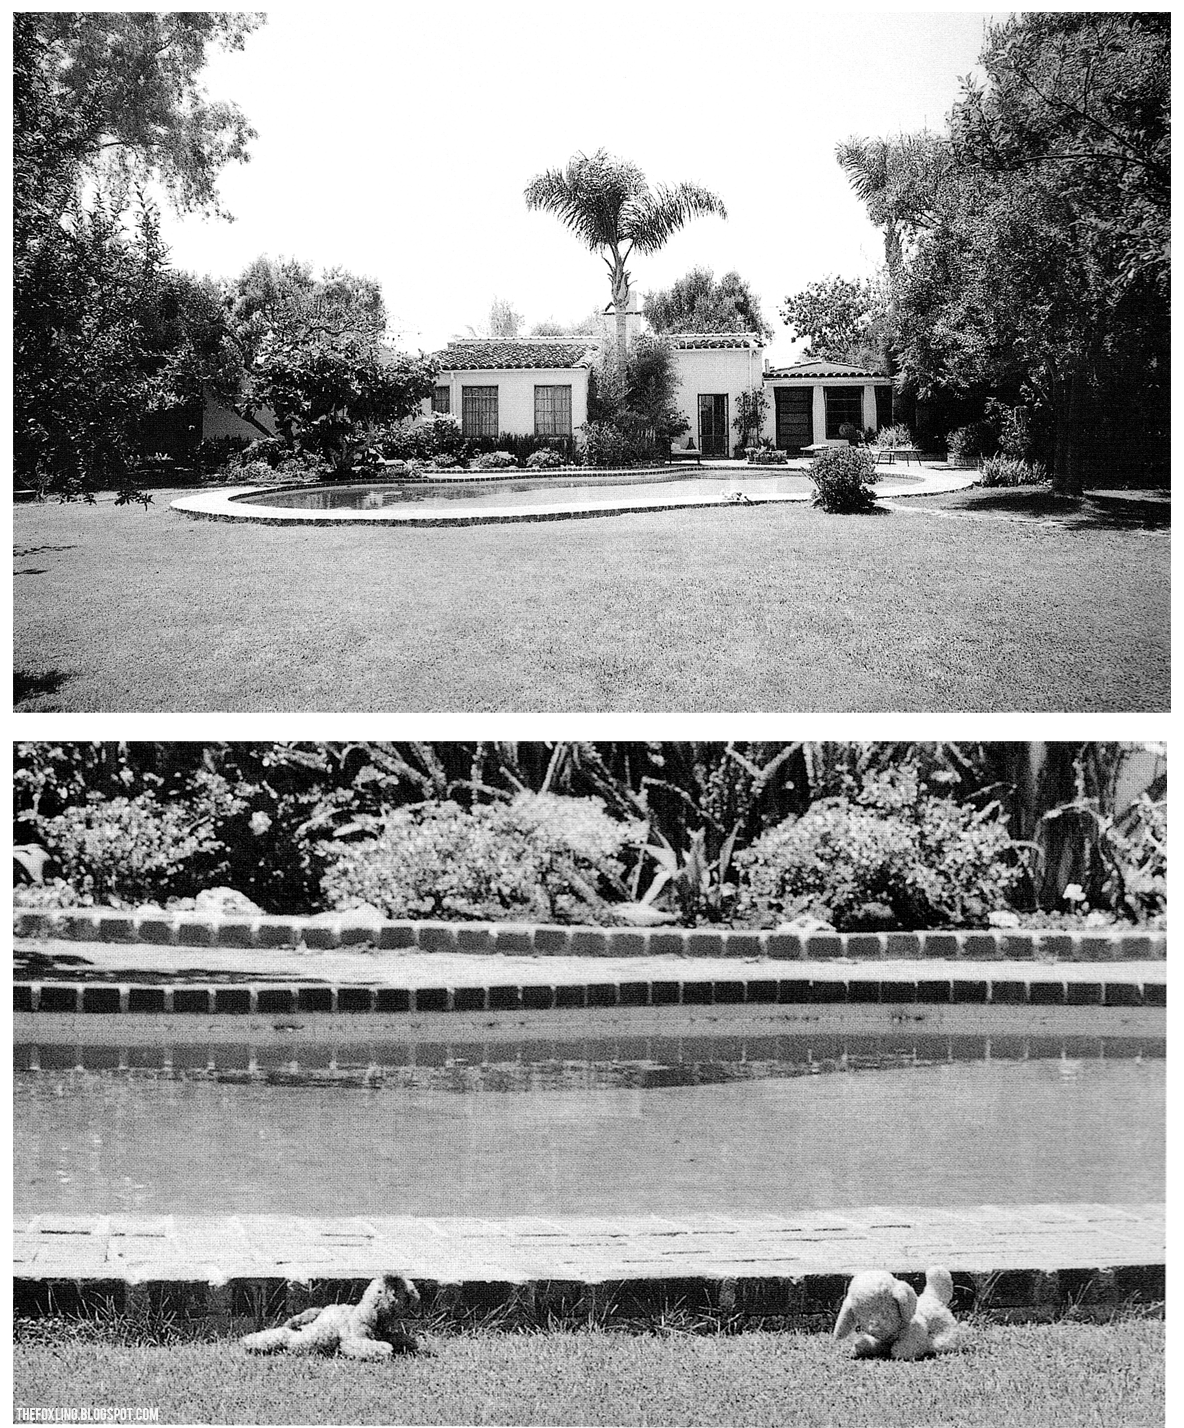 Marilyn Monroe's home on the day of her death